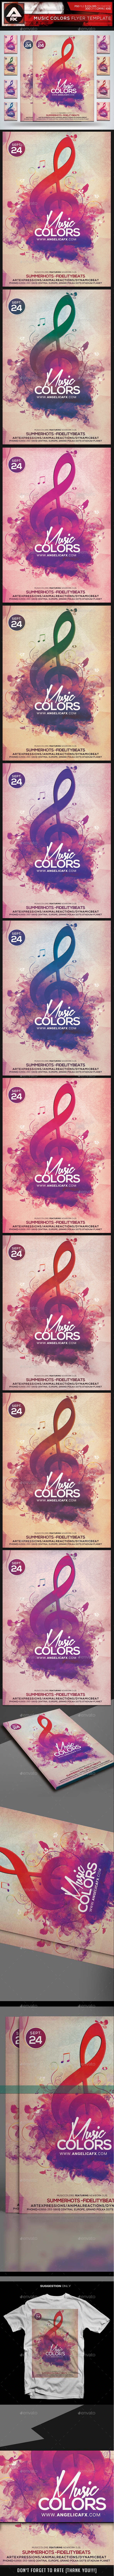 Music Colors Flyer Template - Flyers Print Templates